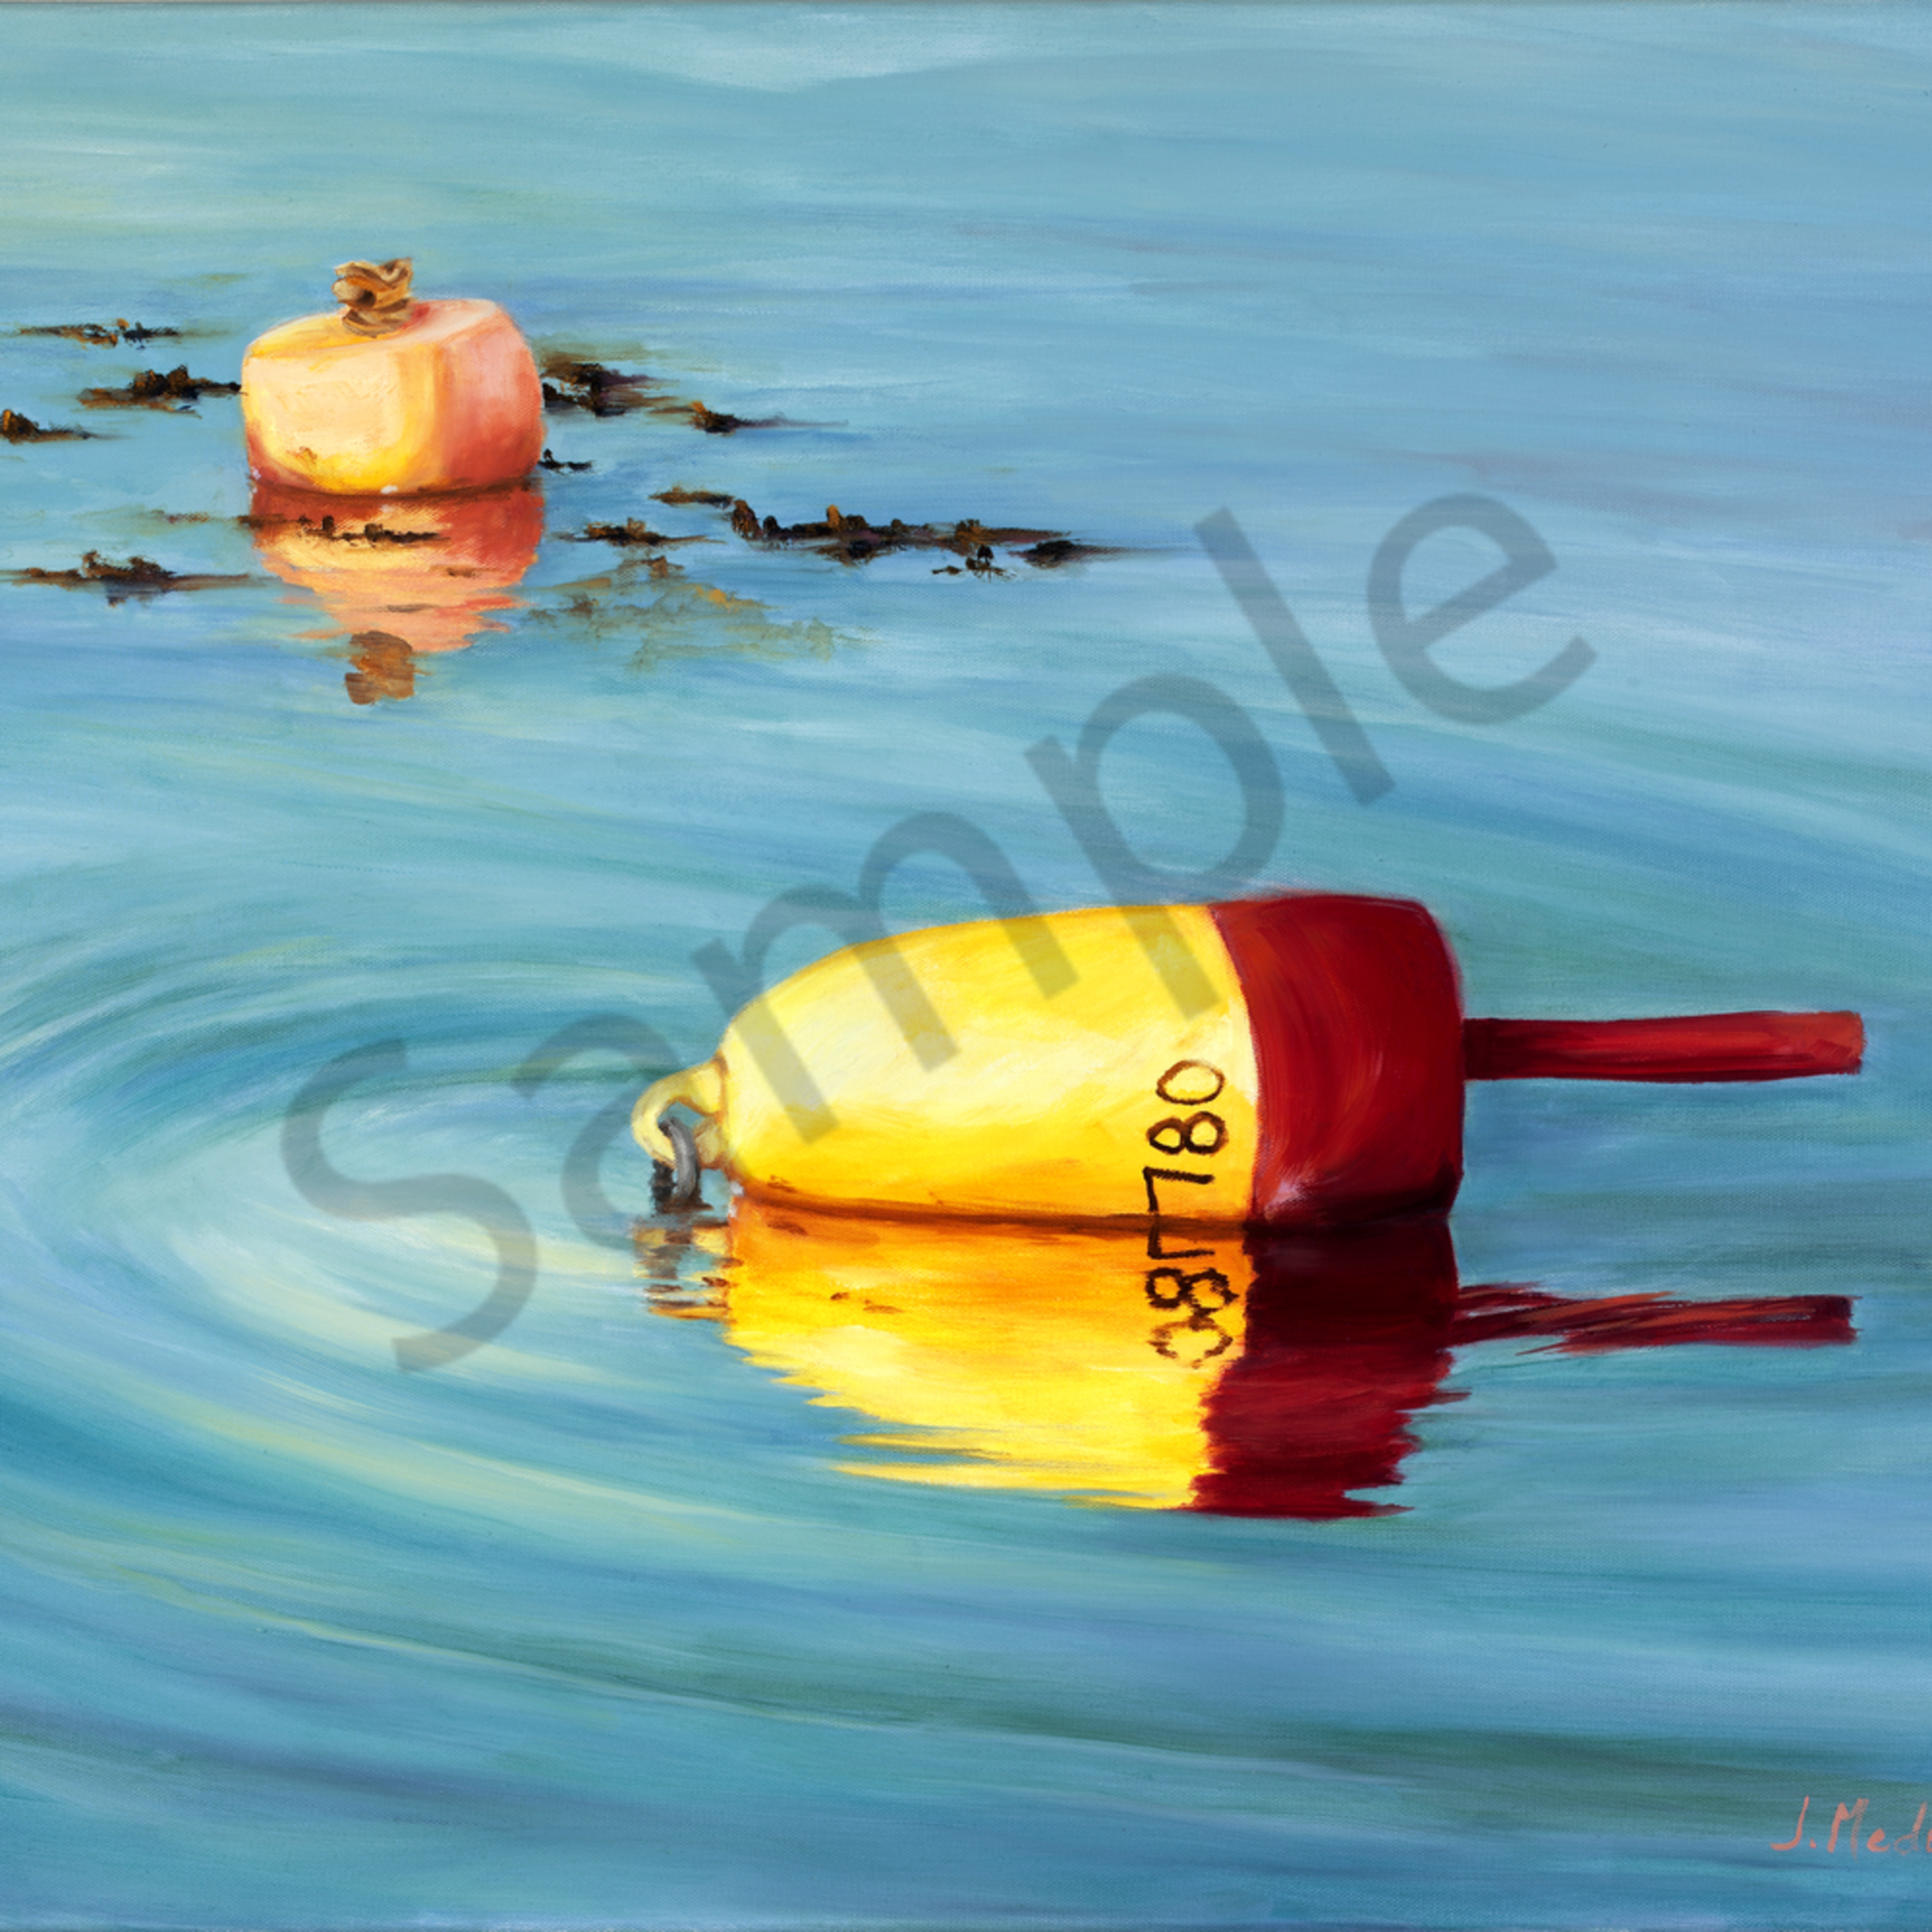 Picture 206 maine lobster bouy 24x30 b flat 89mg gatjvs